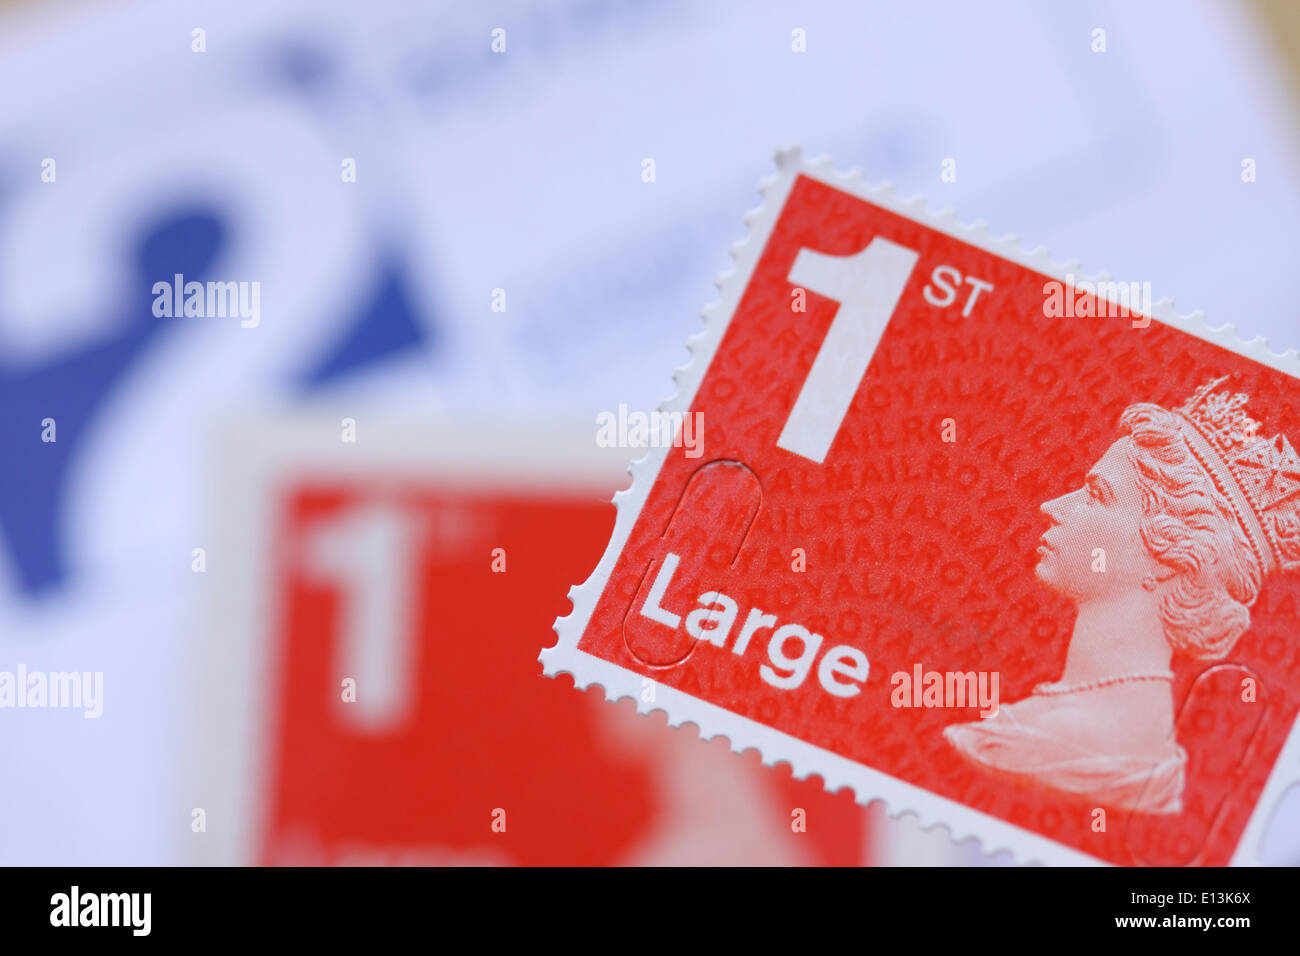 Royal Mail 1st first class Large stamp - Stock Image